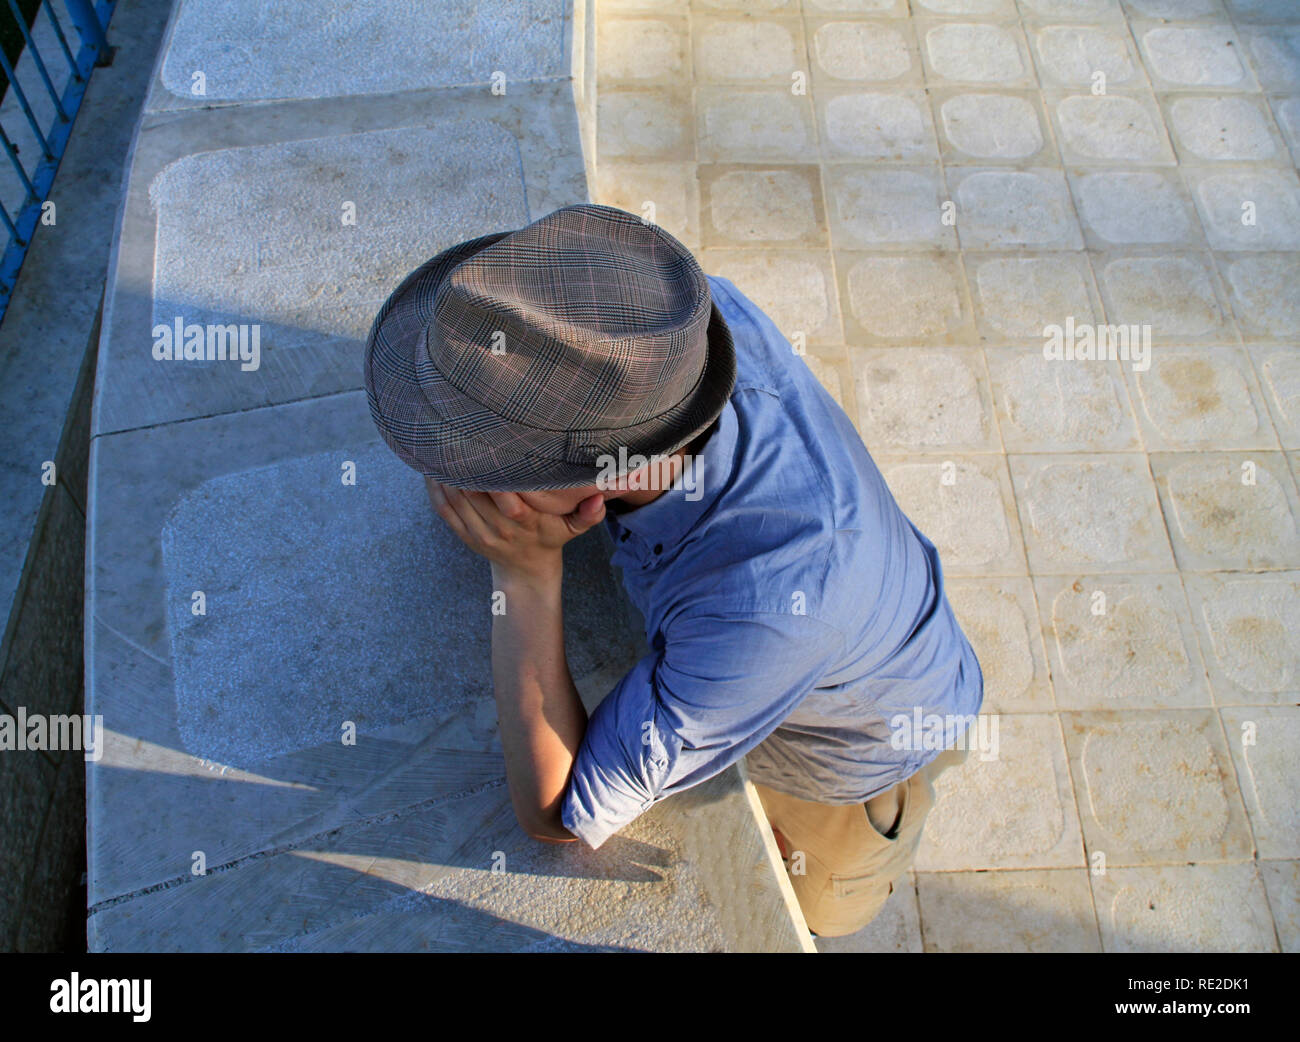 Man with a fedora, with his head resting on his hands seen from a high angle - Stock Image